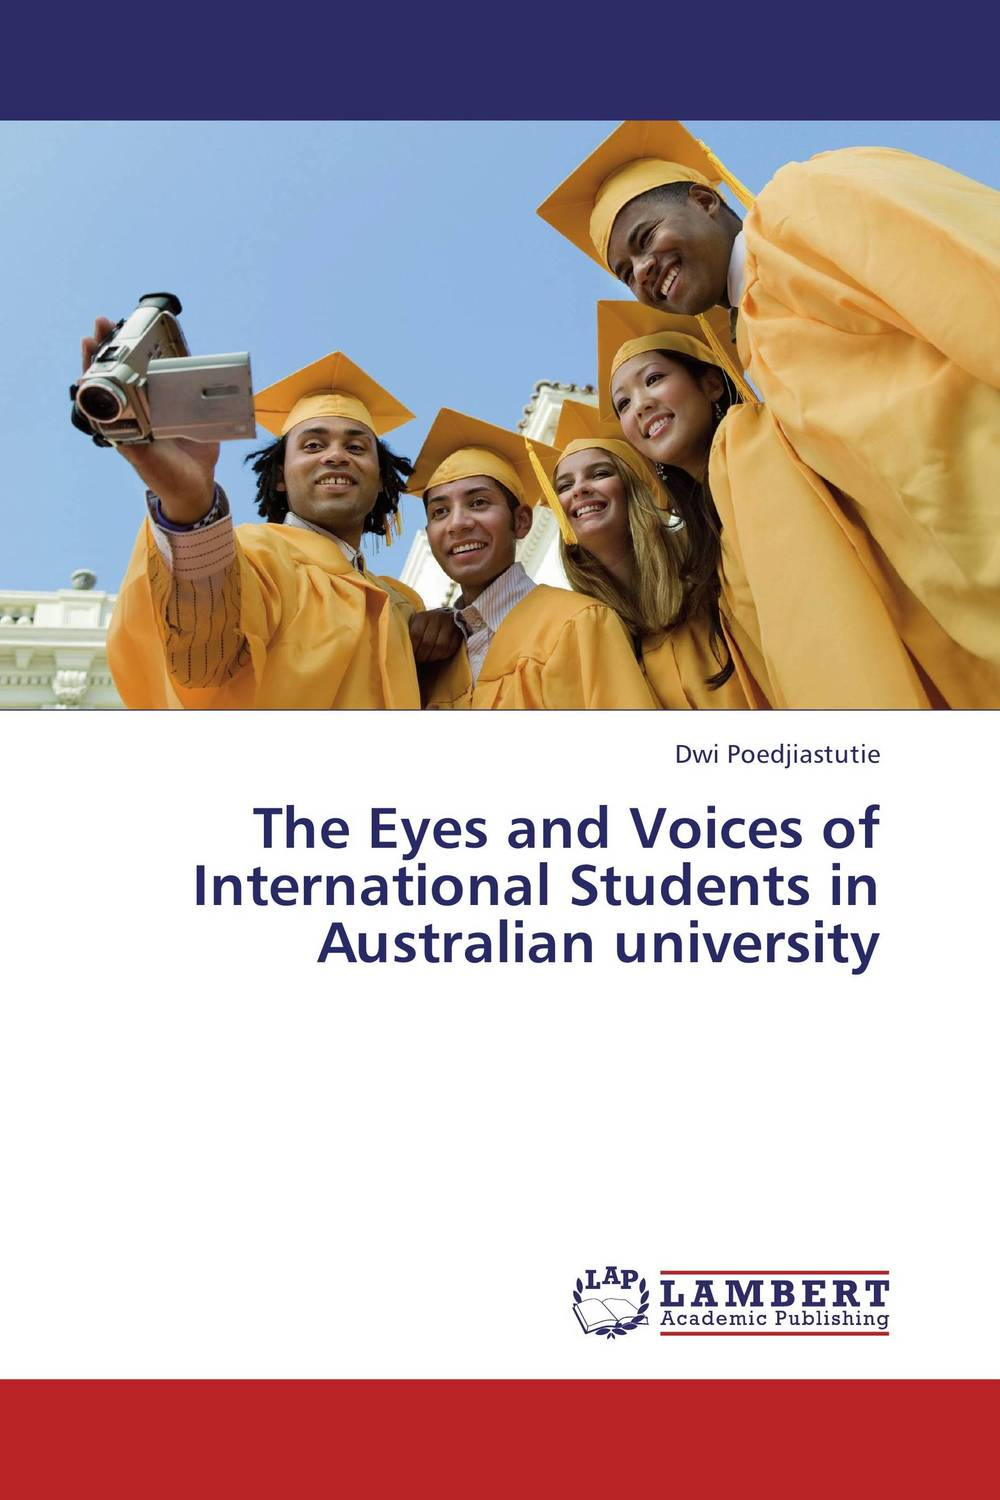 The Eyes and Voices of International Students in Australian university breast form bra mastectomy bra designed with pocket bra for silicone breast prosthesis